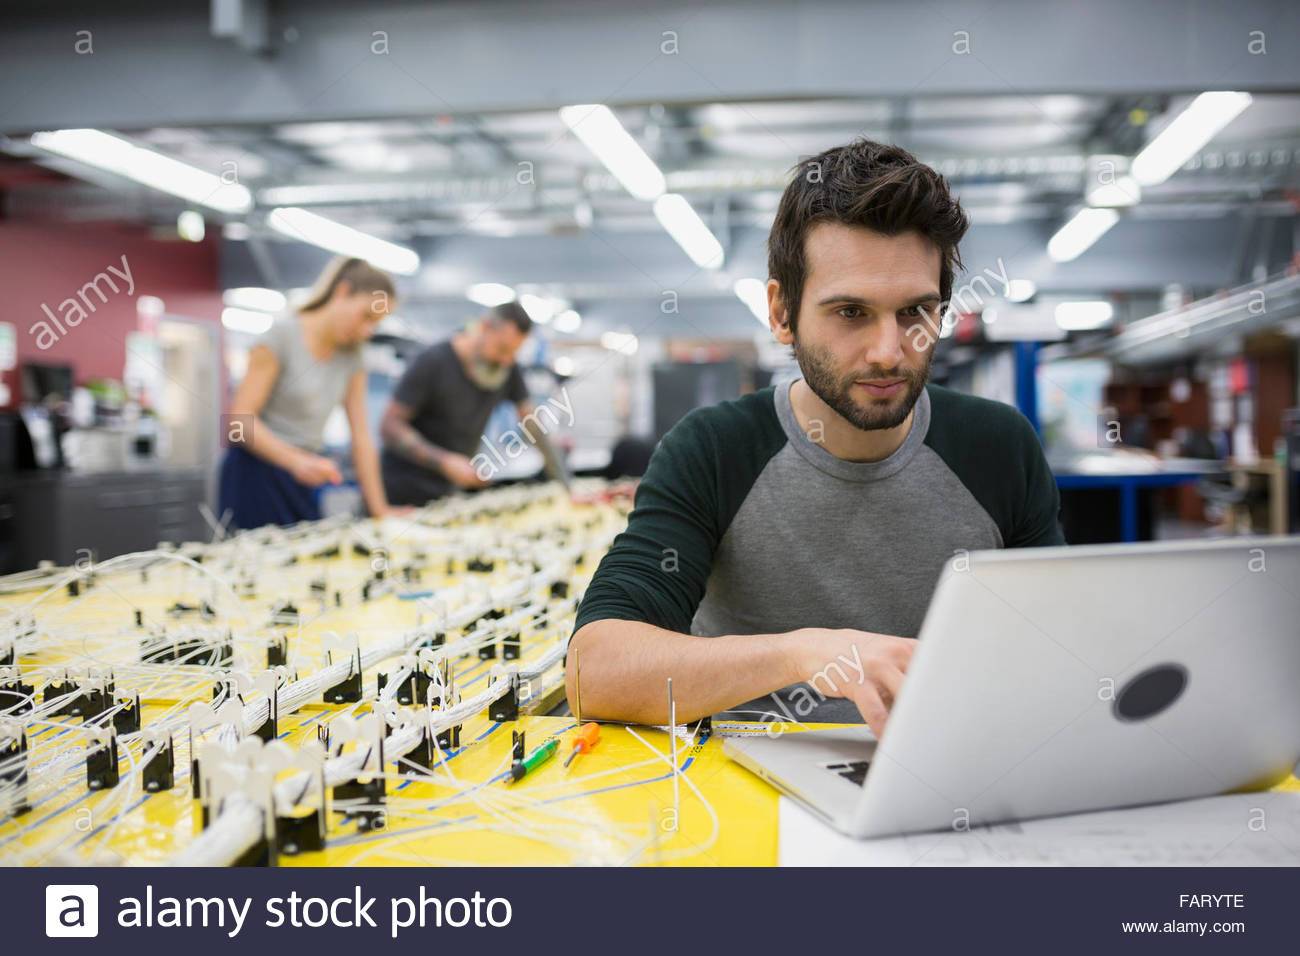 Wiring Harness Jobs Usa Stock Photos Images Alamy Helicopter Technician Using Laptop At Image